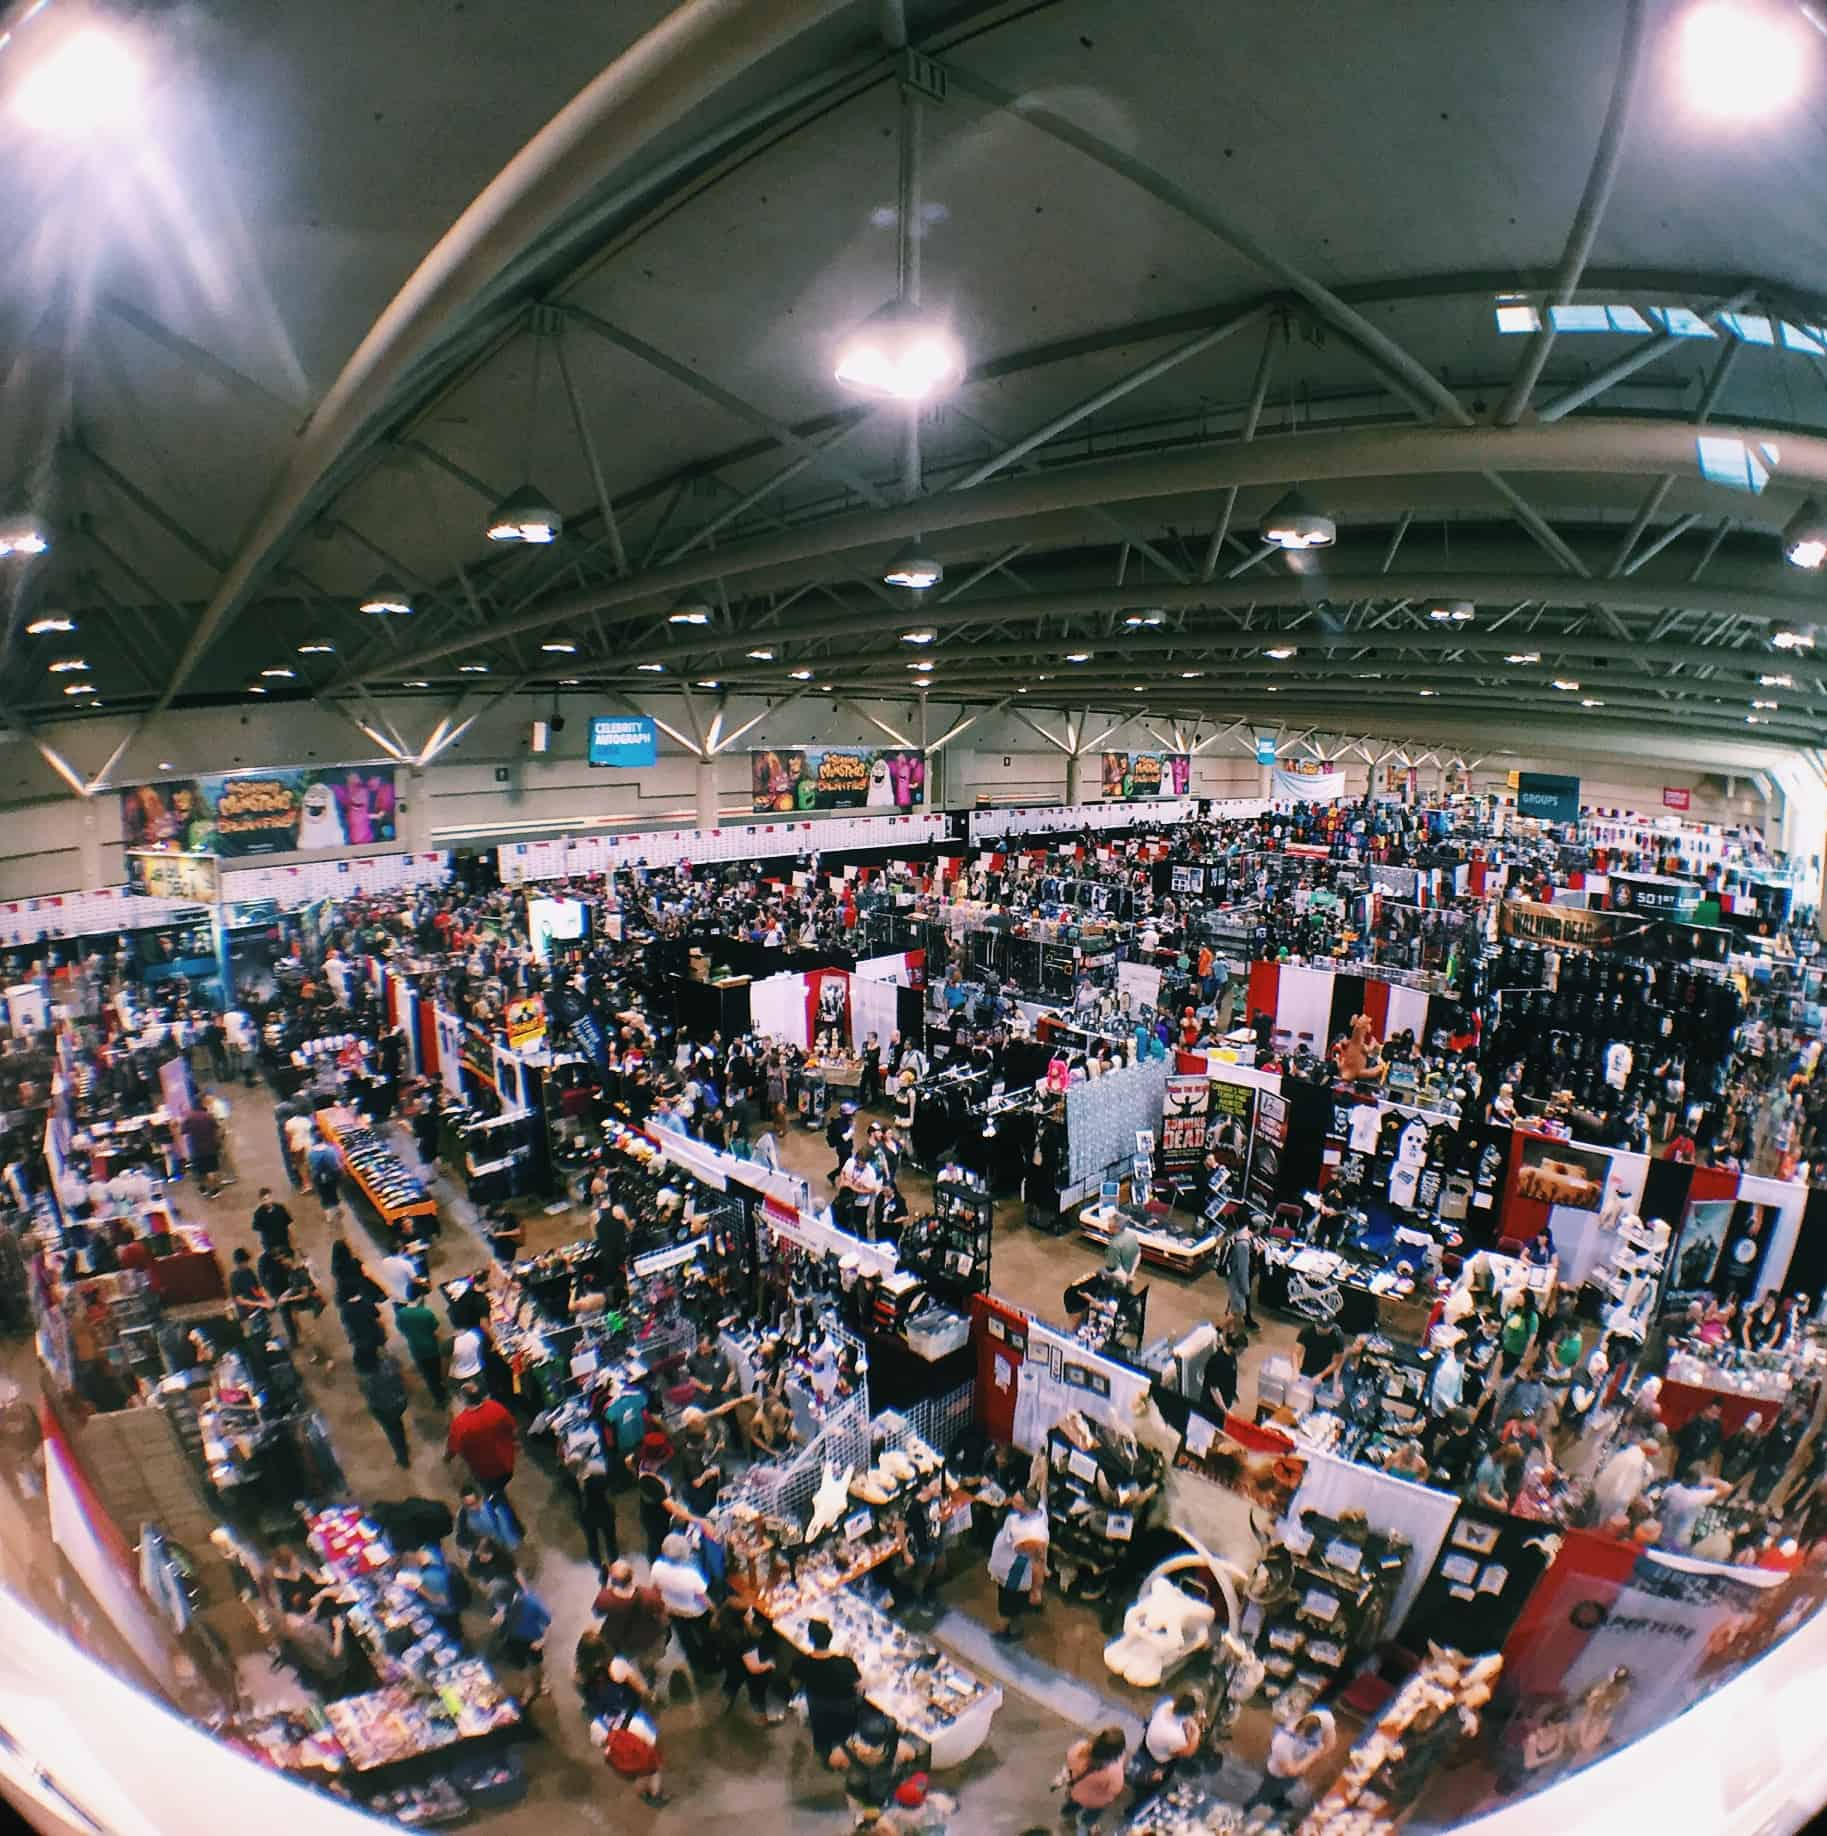 Metro Toronto Convention Centre Fan Expo 2015